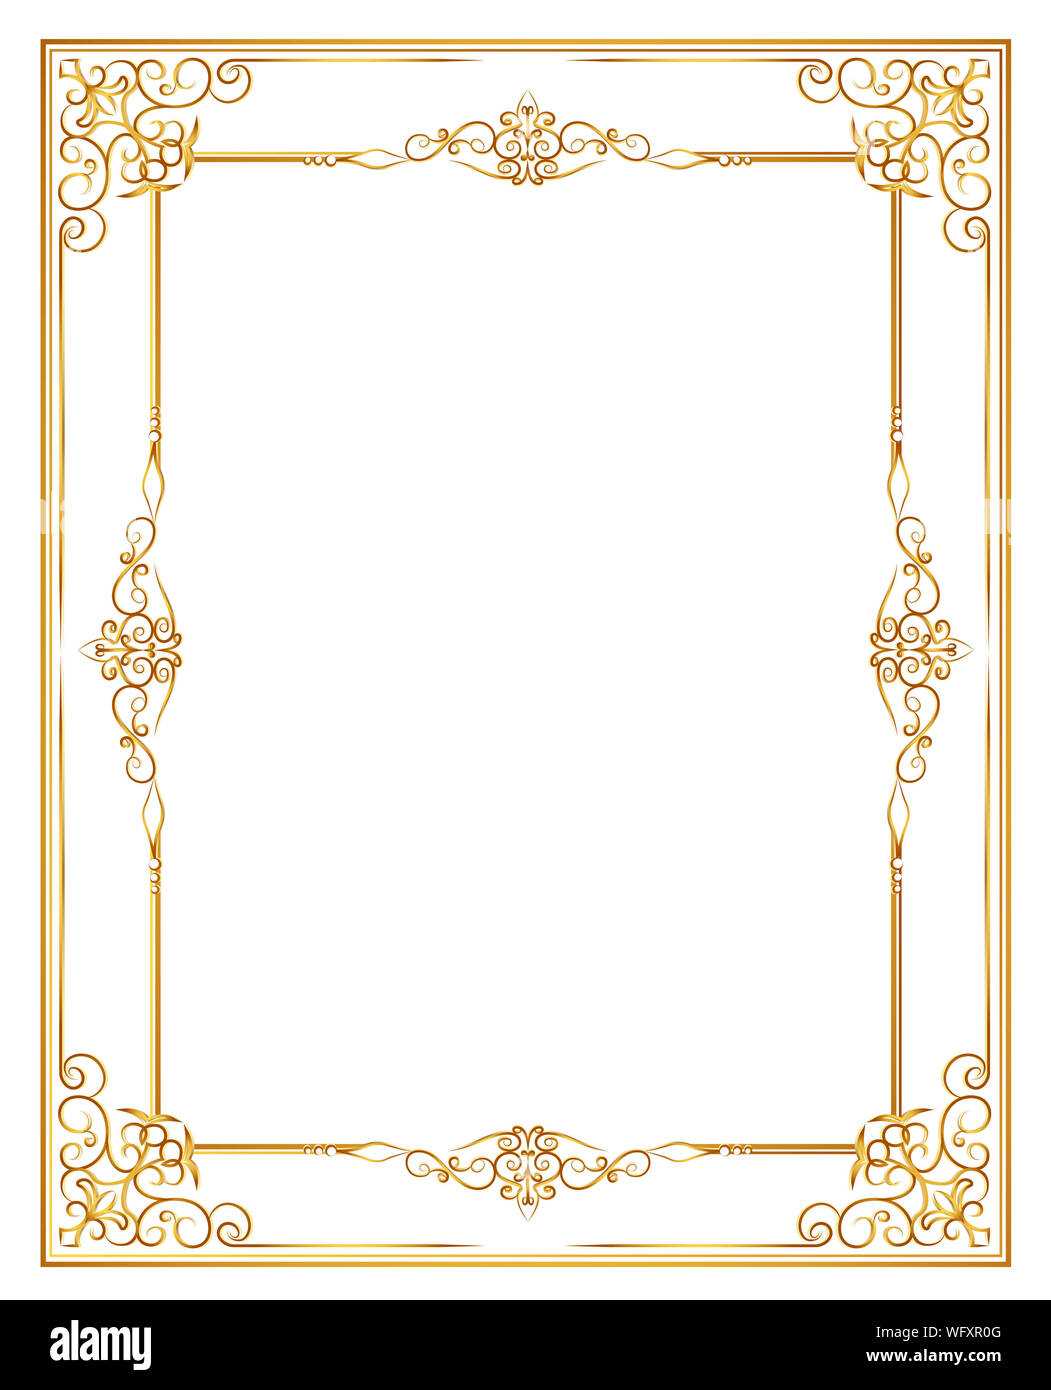 Close-up Of Invitation Card Over White Background Stock Photo - Alamy